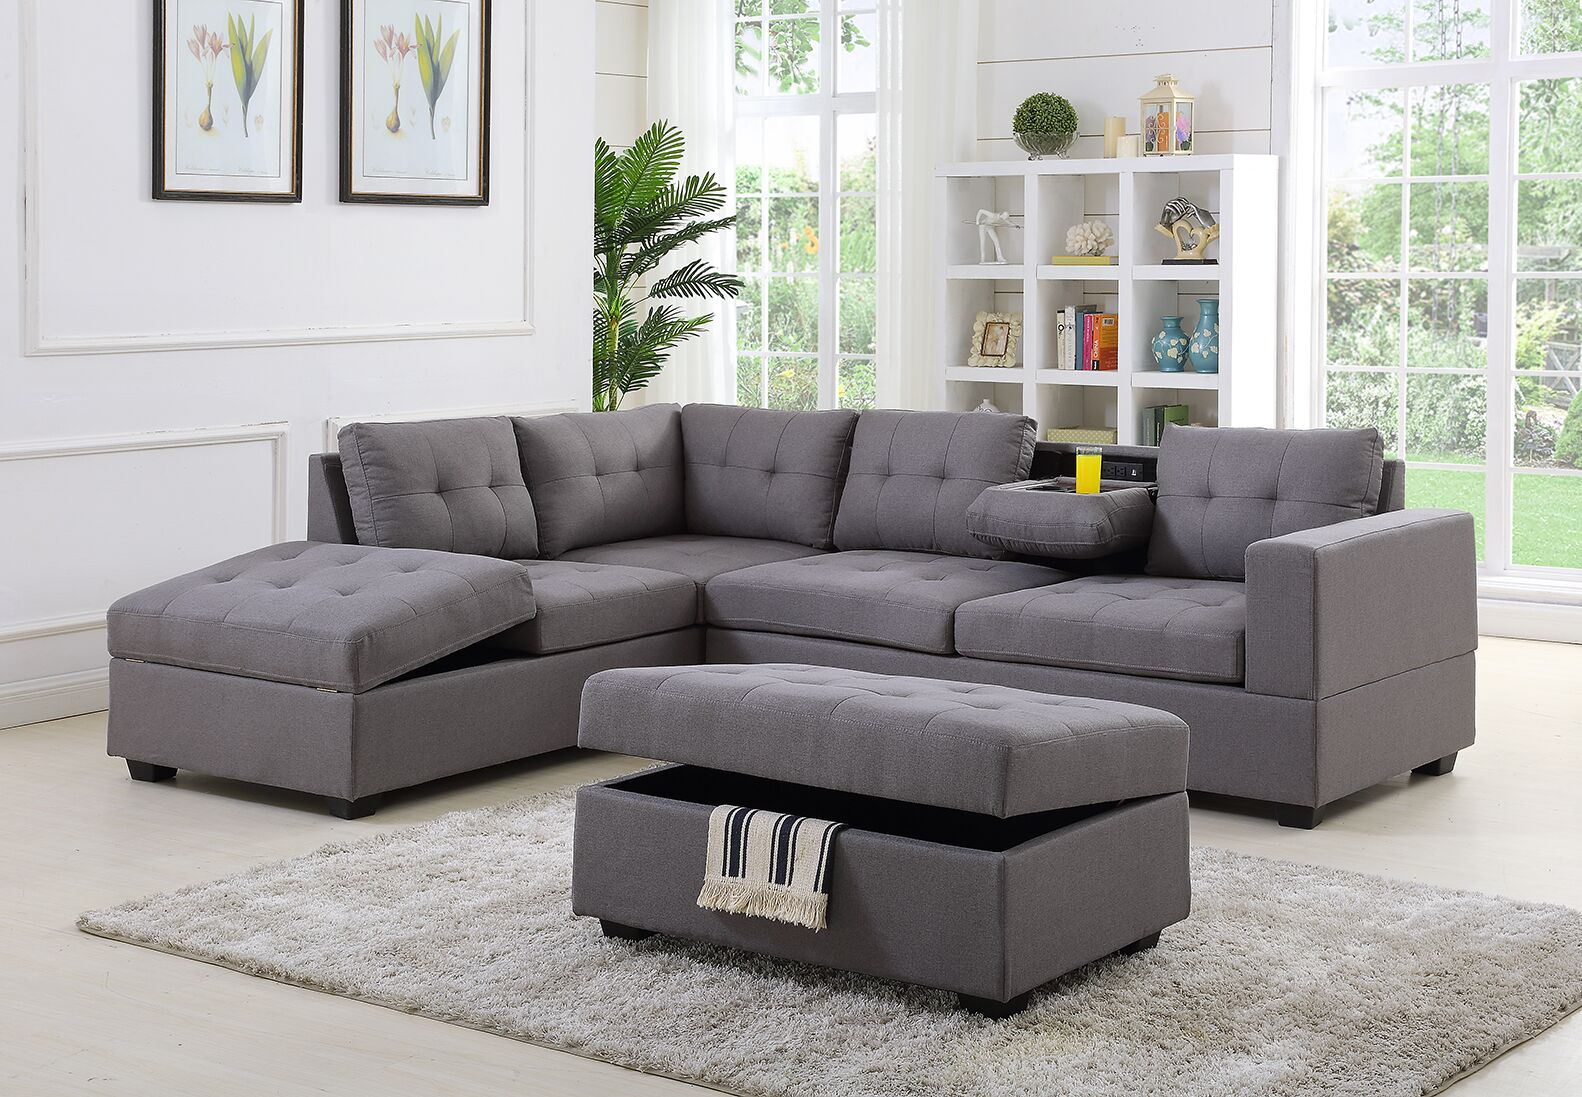 Sofa Sectionnel Grey Upholstered Sectionnel Sofa Bed With With Regard To Houston Sectional Sofas (View 3 of 15)